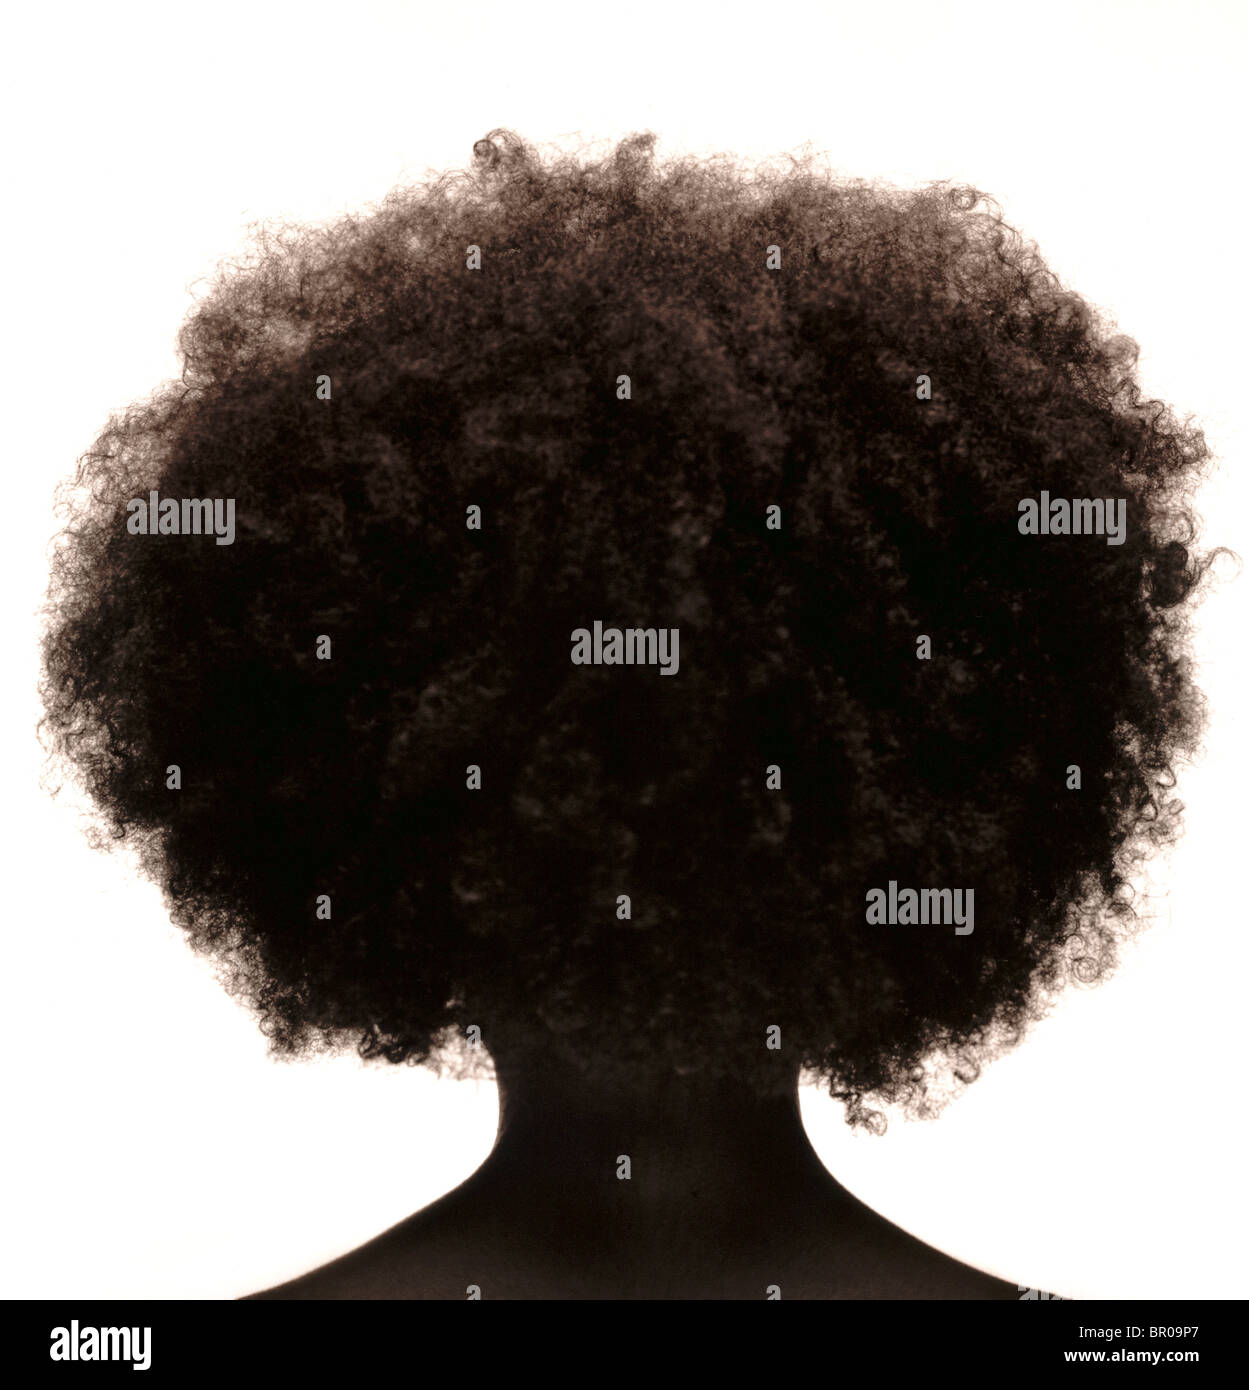 Silhouette of African American womans head with frizzy hair. - Stock Image